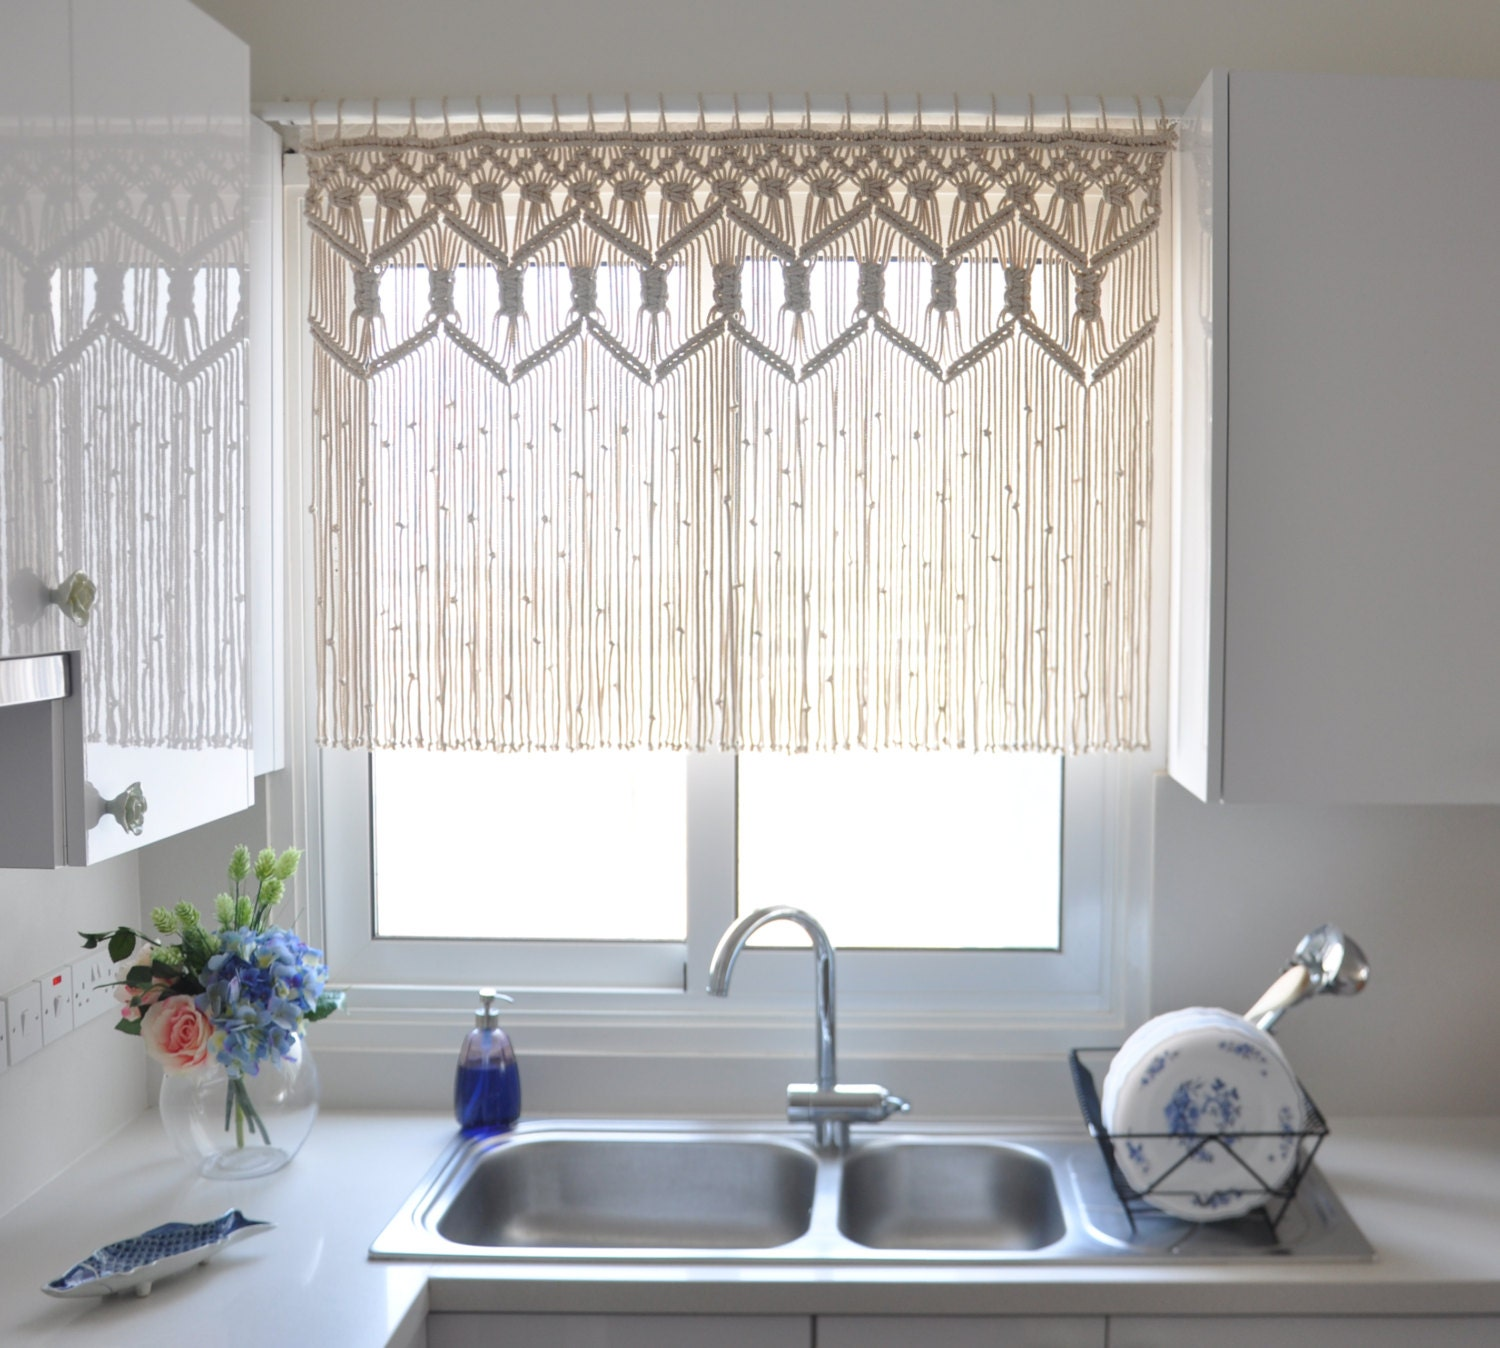 Macrame Curtain Custom Short Kitchen Wall Hanging